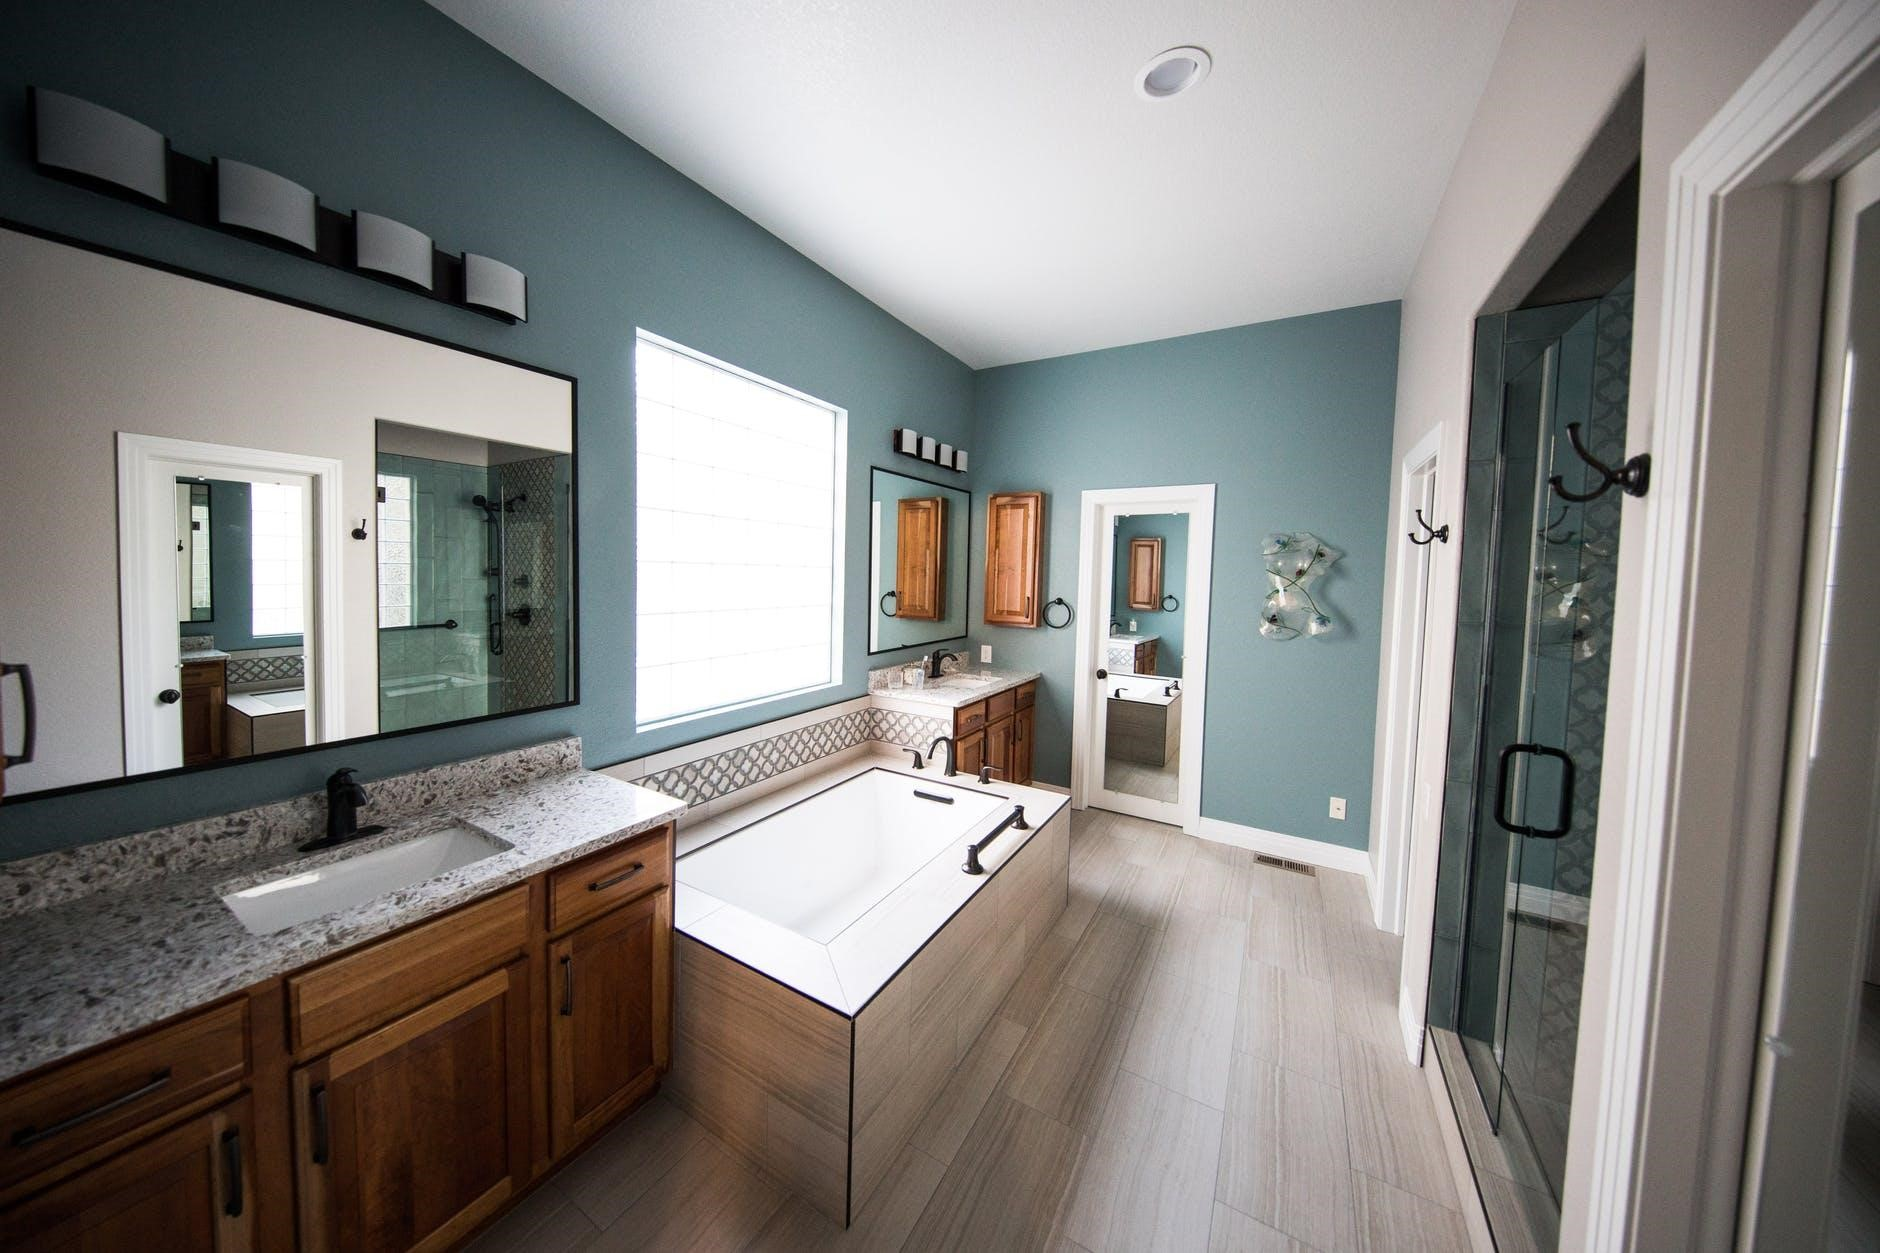 7 Ways To Remodeling A Bathroom Under $500